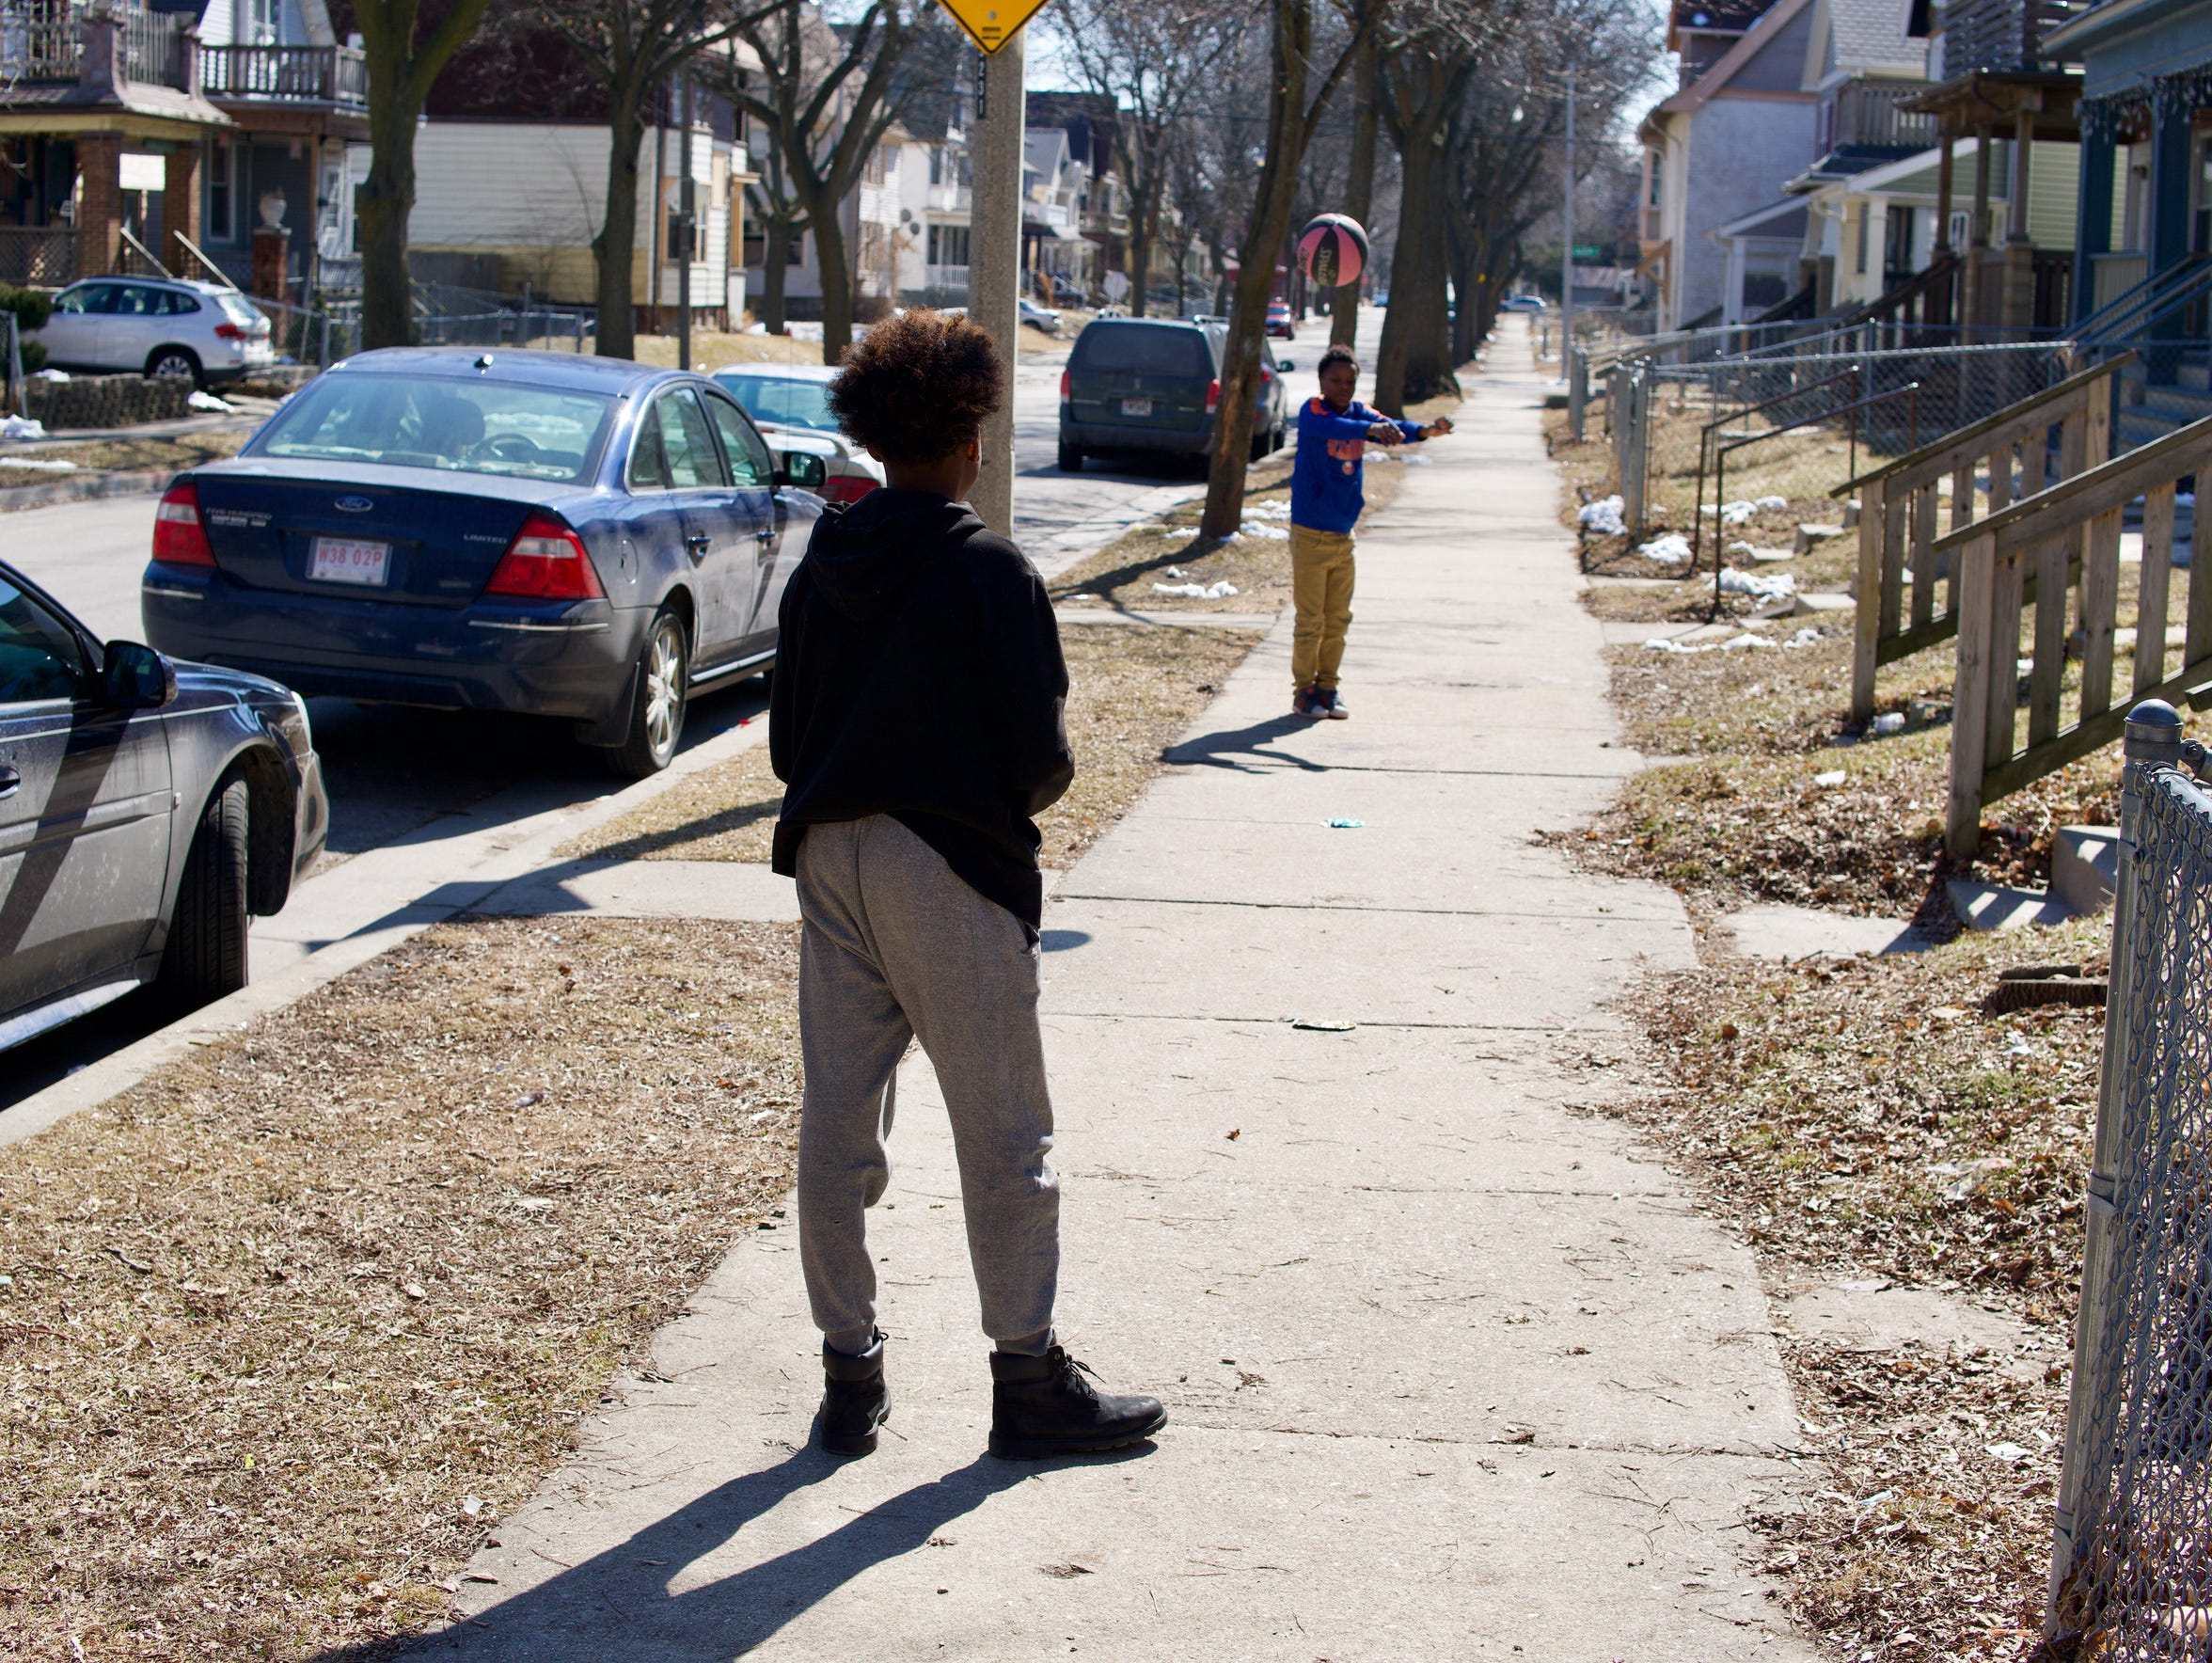 Teenagers bounce a basketball to one another on a cool Saturday afternoon across the street from a memorial to Demetrius A. Eason. Eason was shot to death in June 2017 in the 3200 block of N. Buffum St.